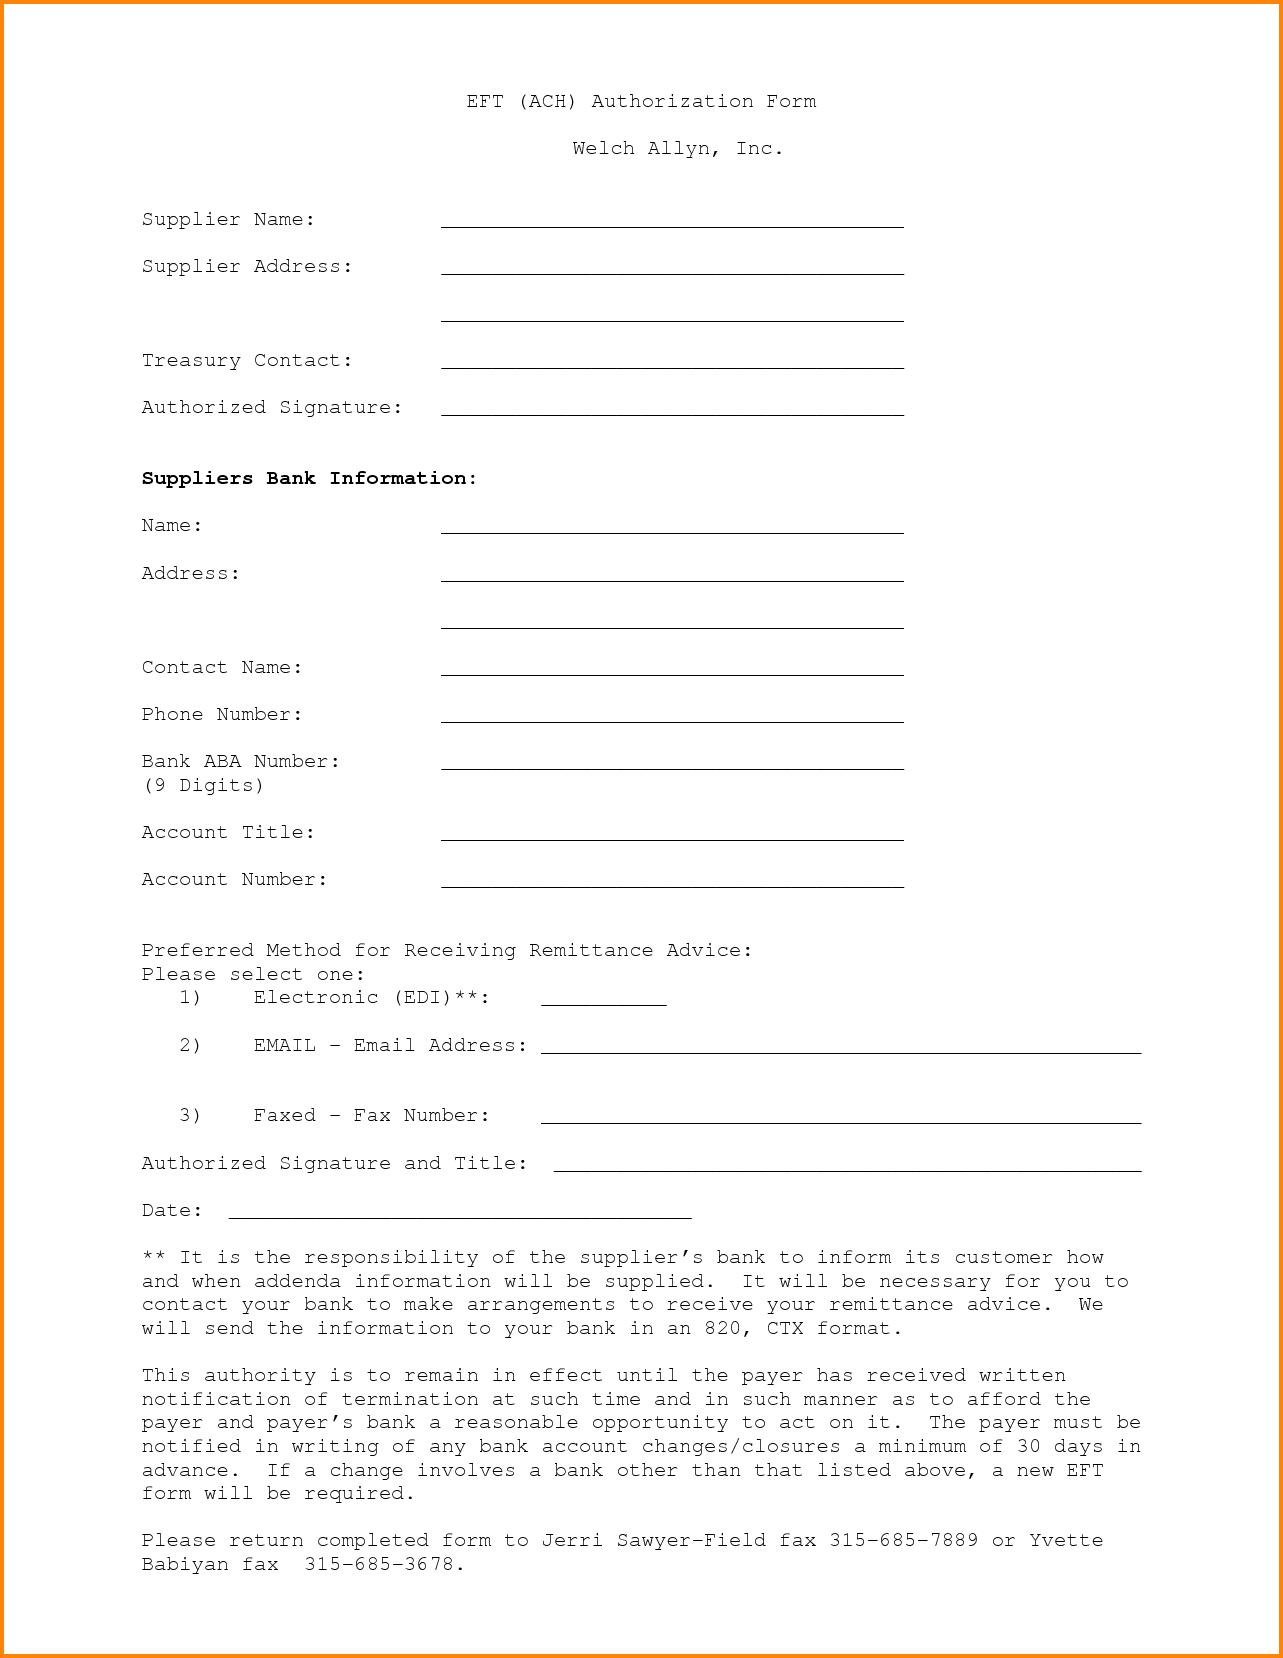 Ach Authorization Form Bank Of America